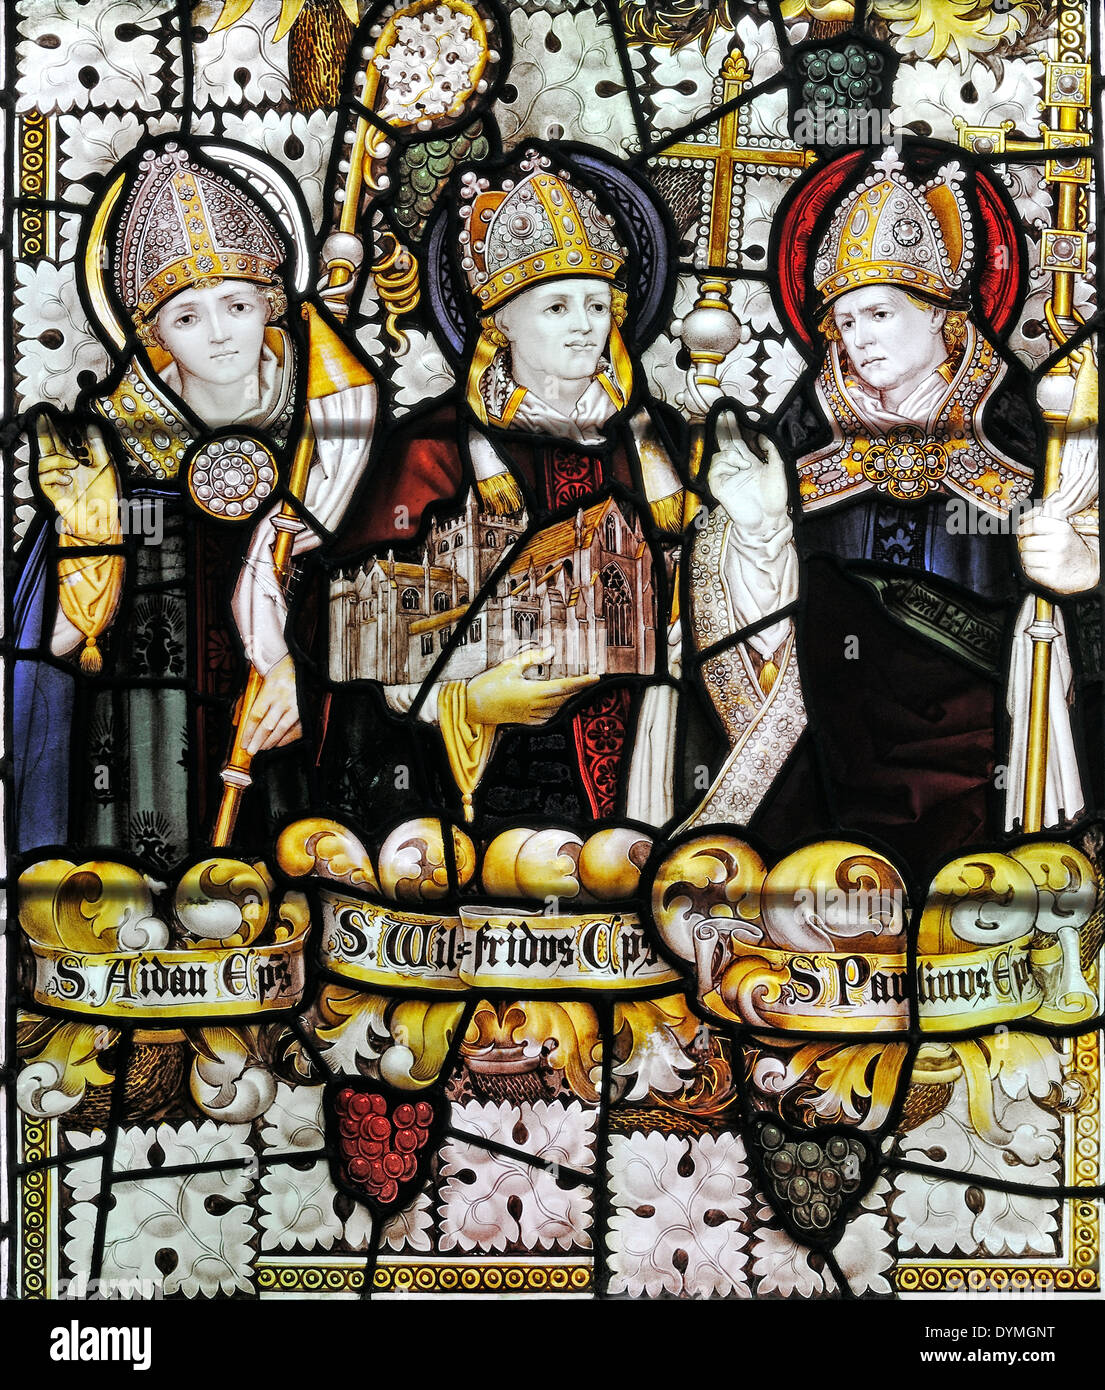 Three early north of England Saints depicted by Charles E. Kempe in the Church of All Saints Pavement, City of York, UK. - Stock Image